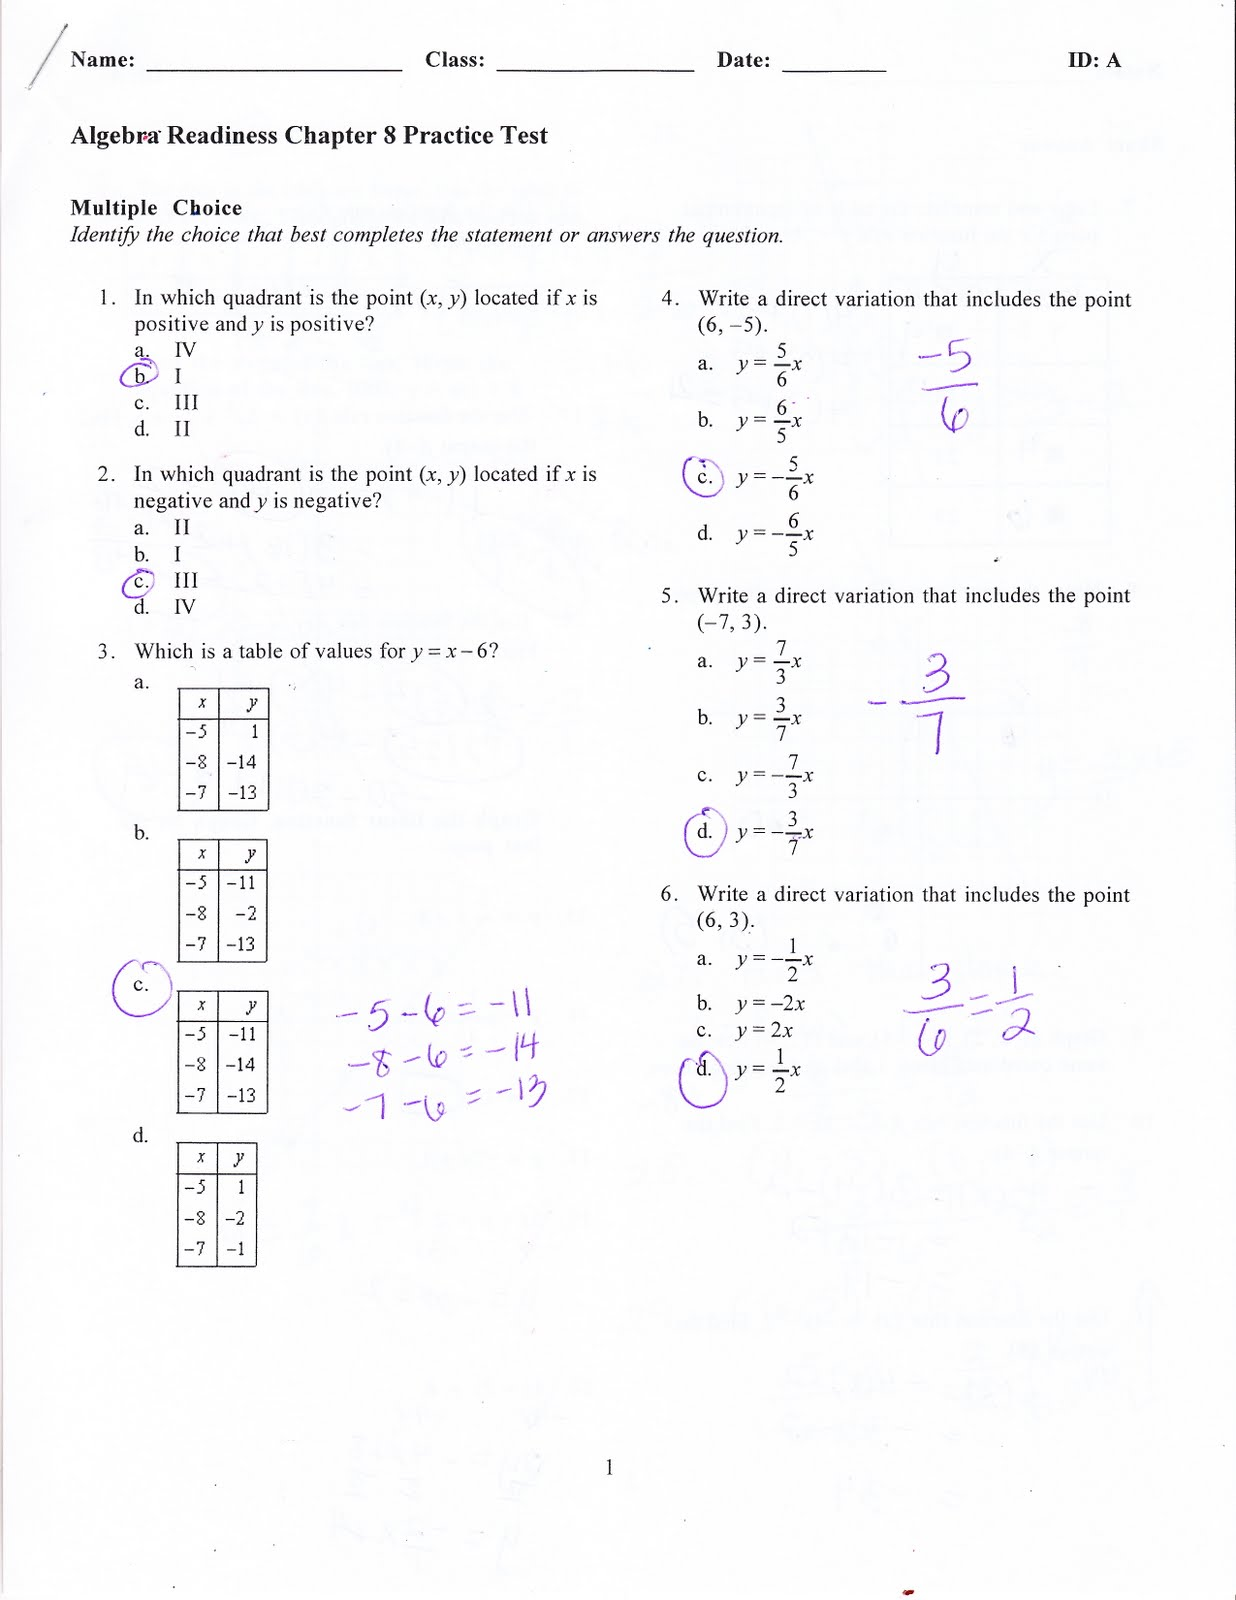 chapter 8 test Copying prohibited llevada's algebra 1 146 chapter 8: radicals chapter 8 test simplify (81) find the value of the variable that would yield a real number for the expression.